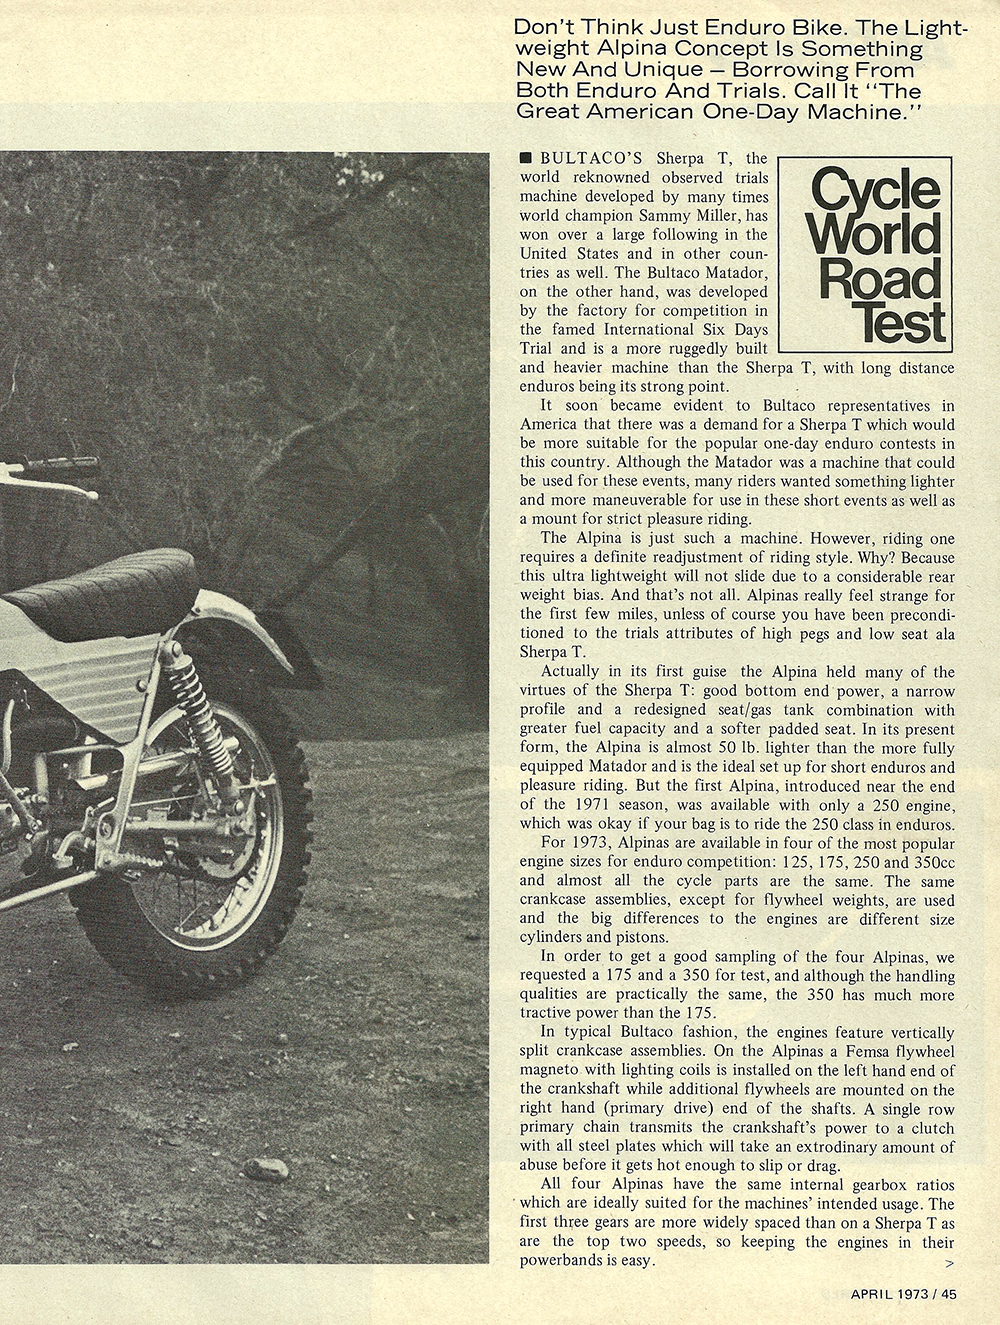 1973 Bultaco Alpina 175 350 road test 02.jpg